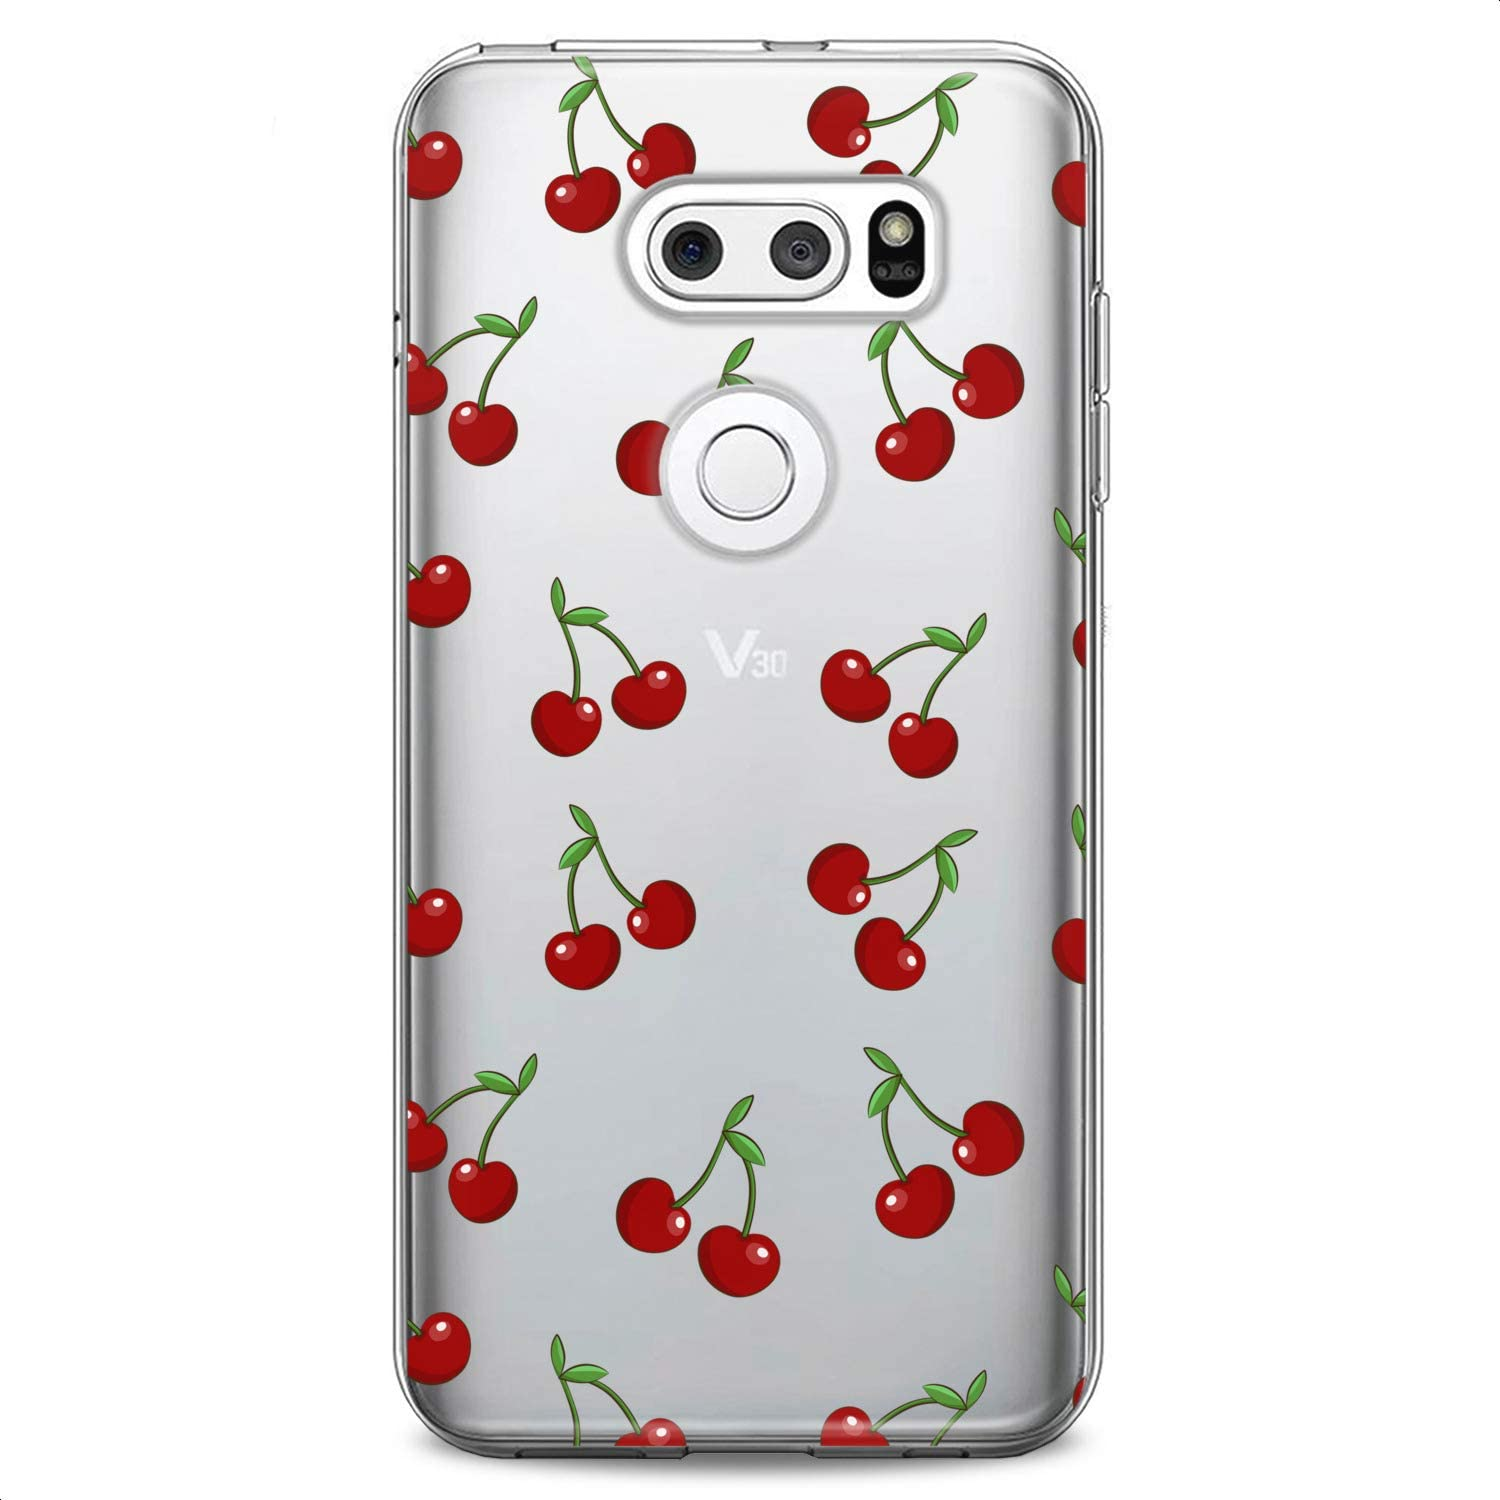 Cavka TPU Case Replacement for LG Stylo 6 K61 K51S K42 K30 K20 Stylo 5 K40 K11 K10 K8 Cherry Soft Red Lovely Tropic Food Fruit Clear Summer Print Design Flexible Silicone Slim fit Cute Cute Luxury